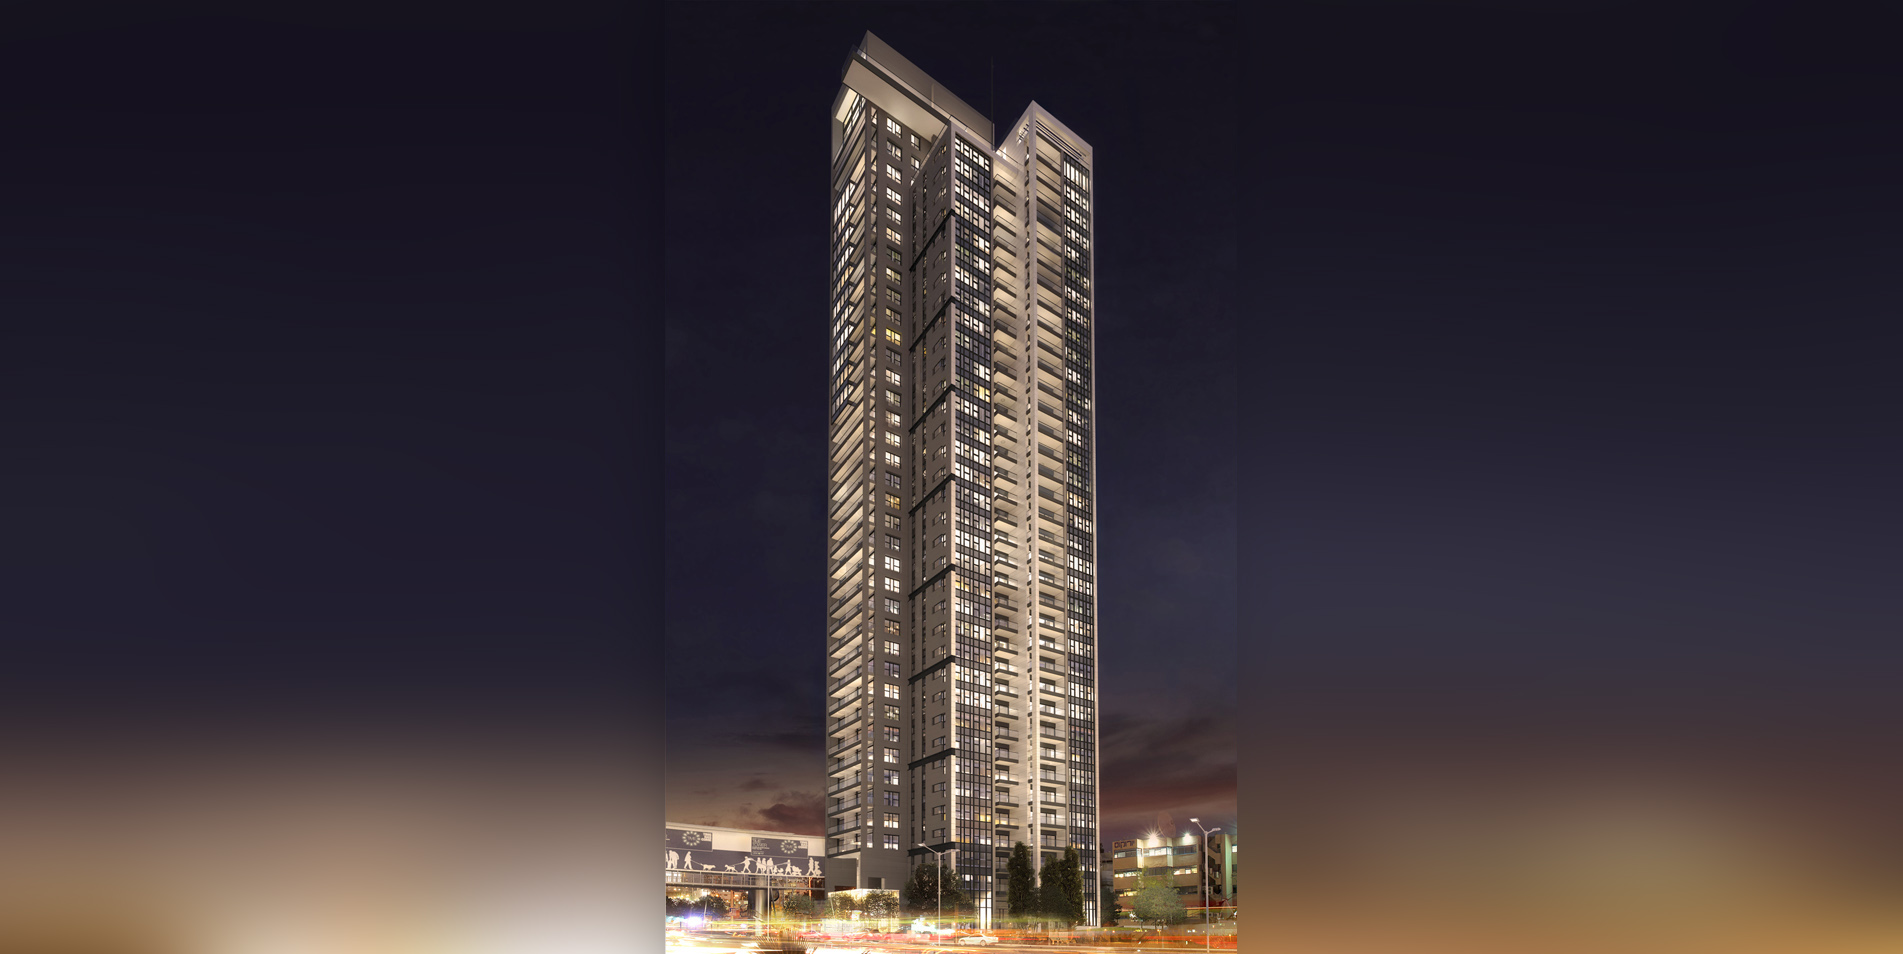 BEAUTIFUL DESIGN APARMTENT ON HIGH FLOOR IN EXLUSIVE TOWER!